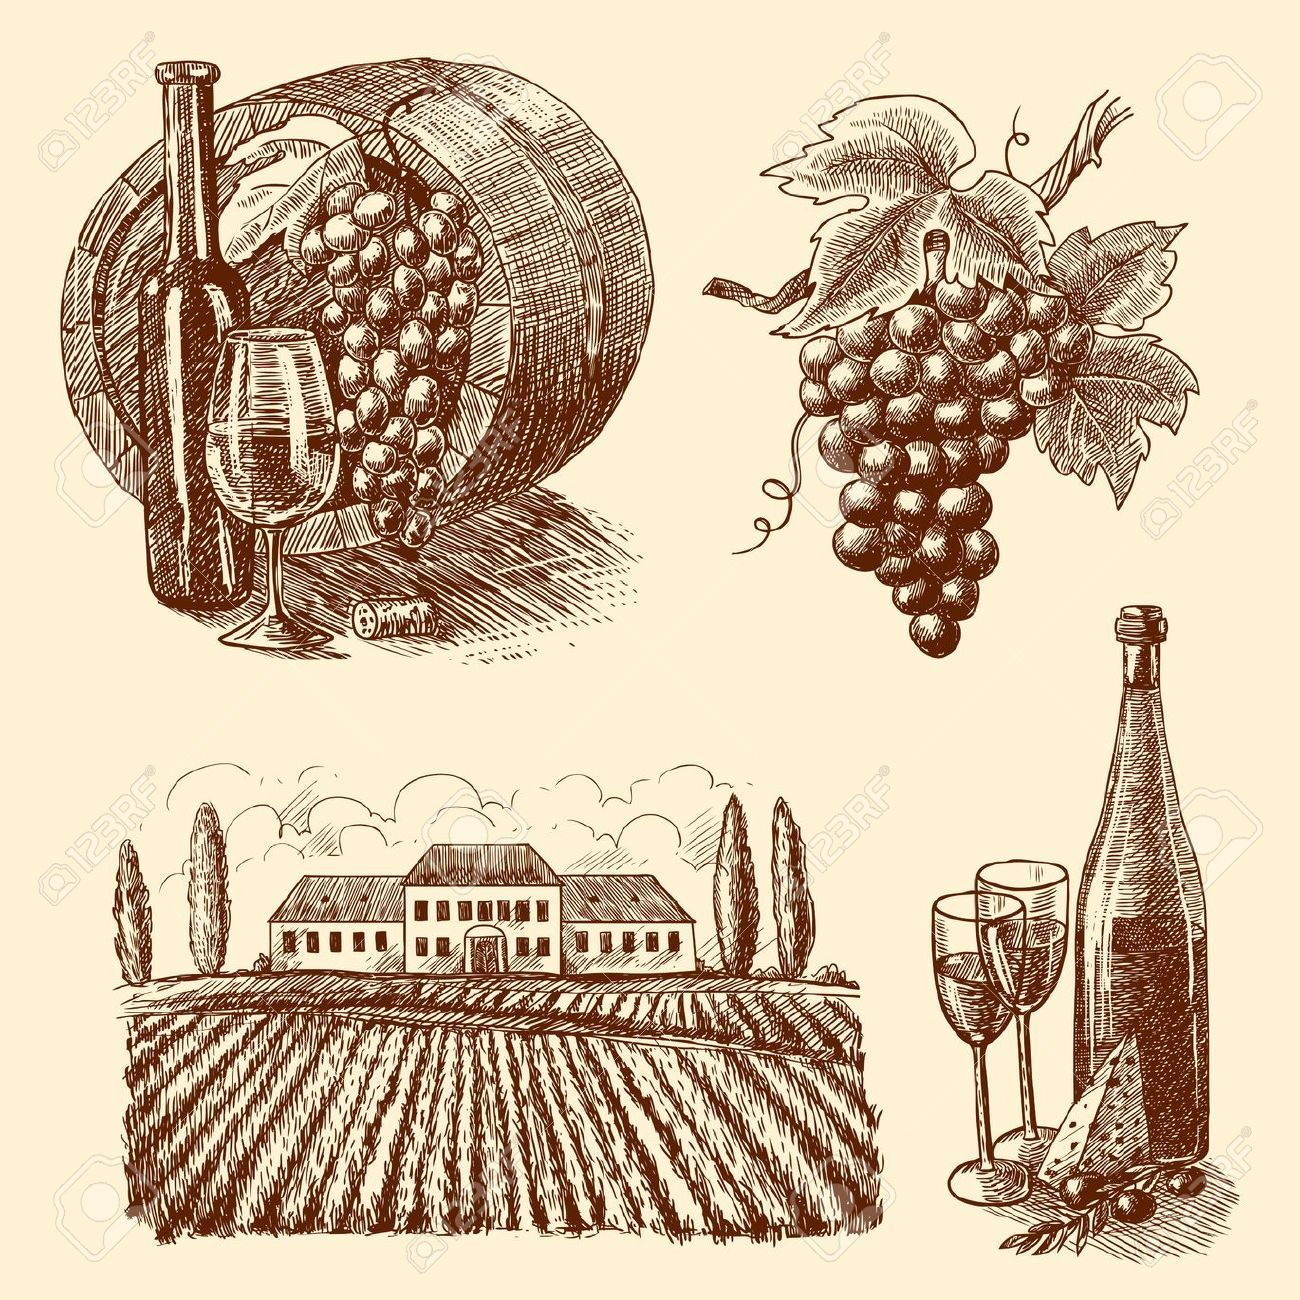 Wine label artwork clipart clip art freeuse library Pin by Monica Philosophergurl on The finer things ... clip art freeuse library